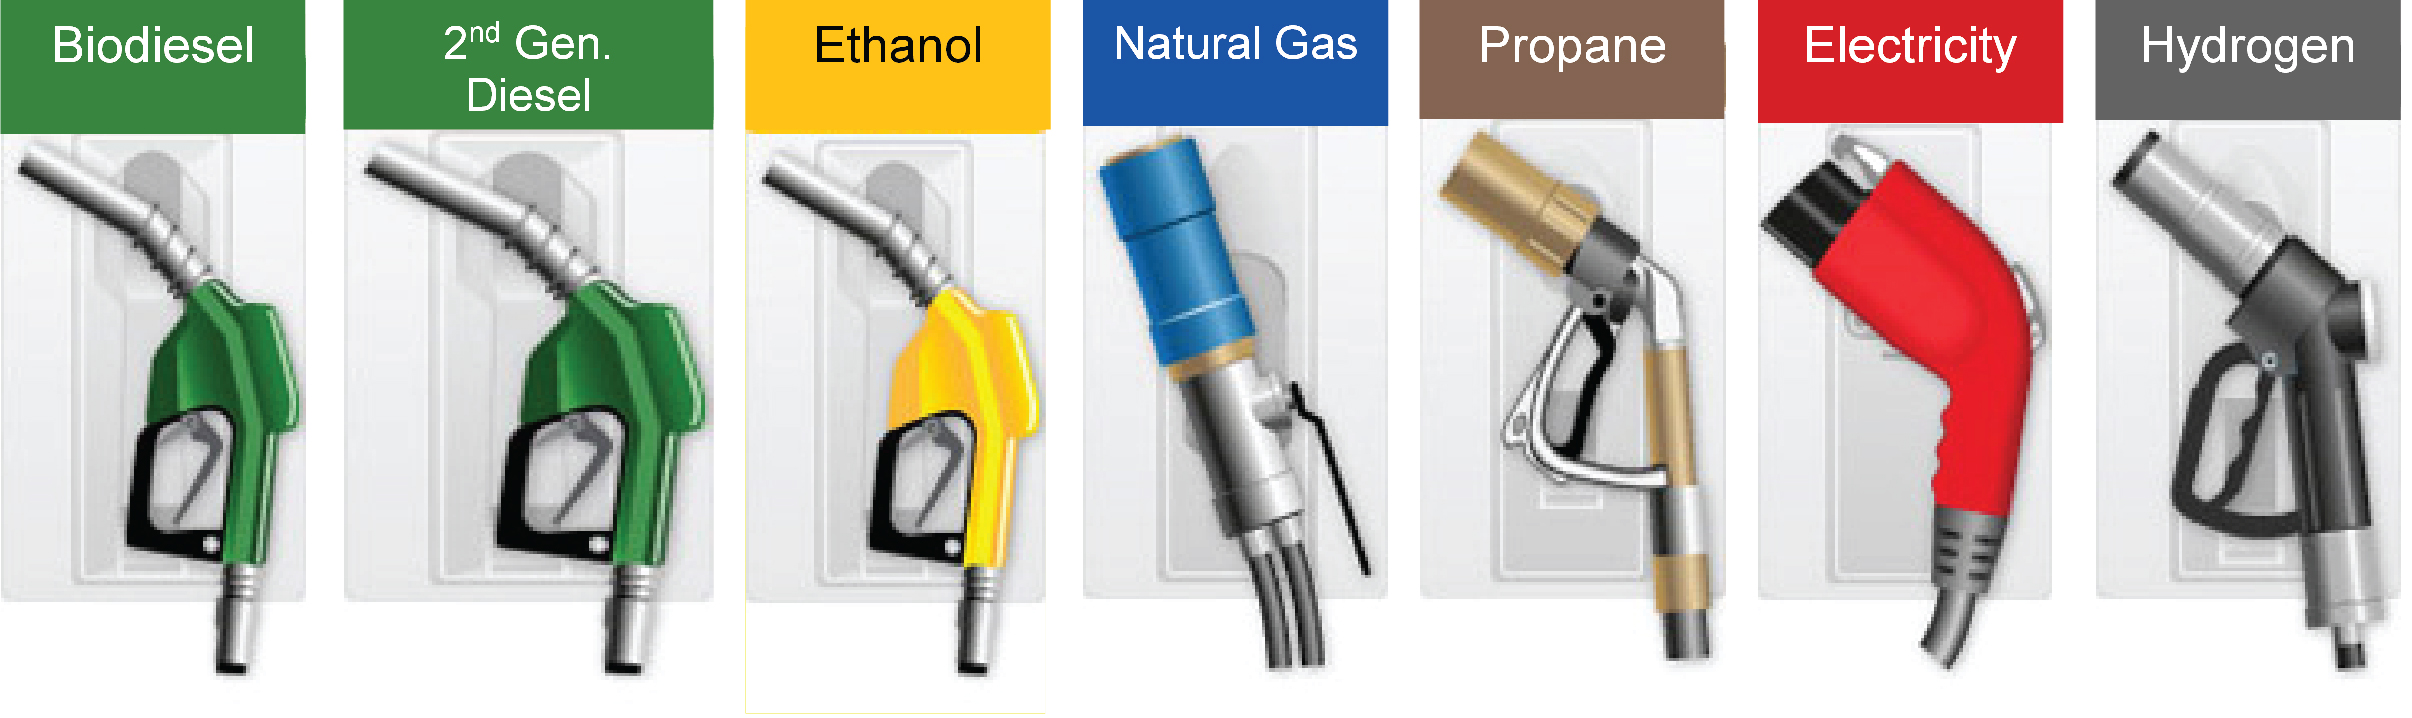 Image showing filling nozzels for different types of alternative fuel: Biodiesel; 2nd Gen. Diesel; Ethanol; Natural Gas; Propane; Electricity; Hydrogen